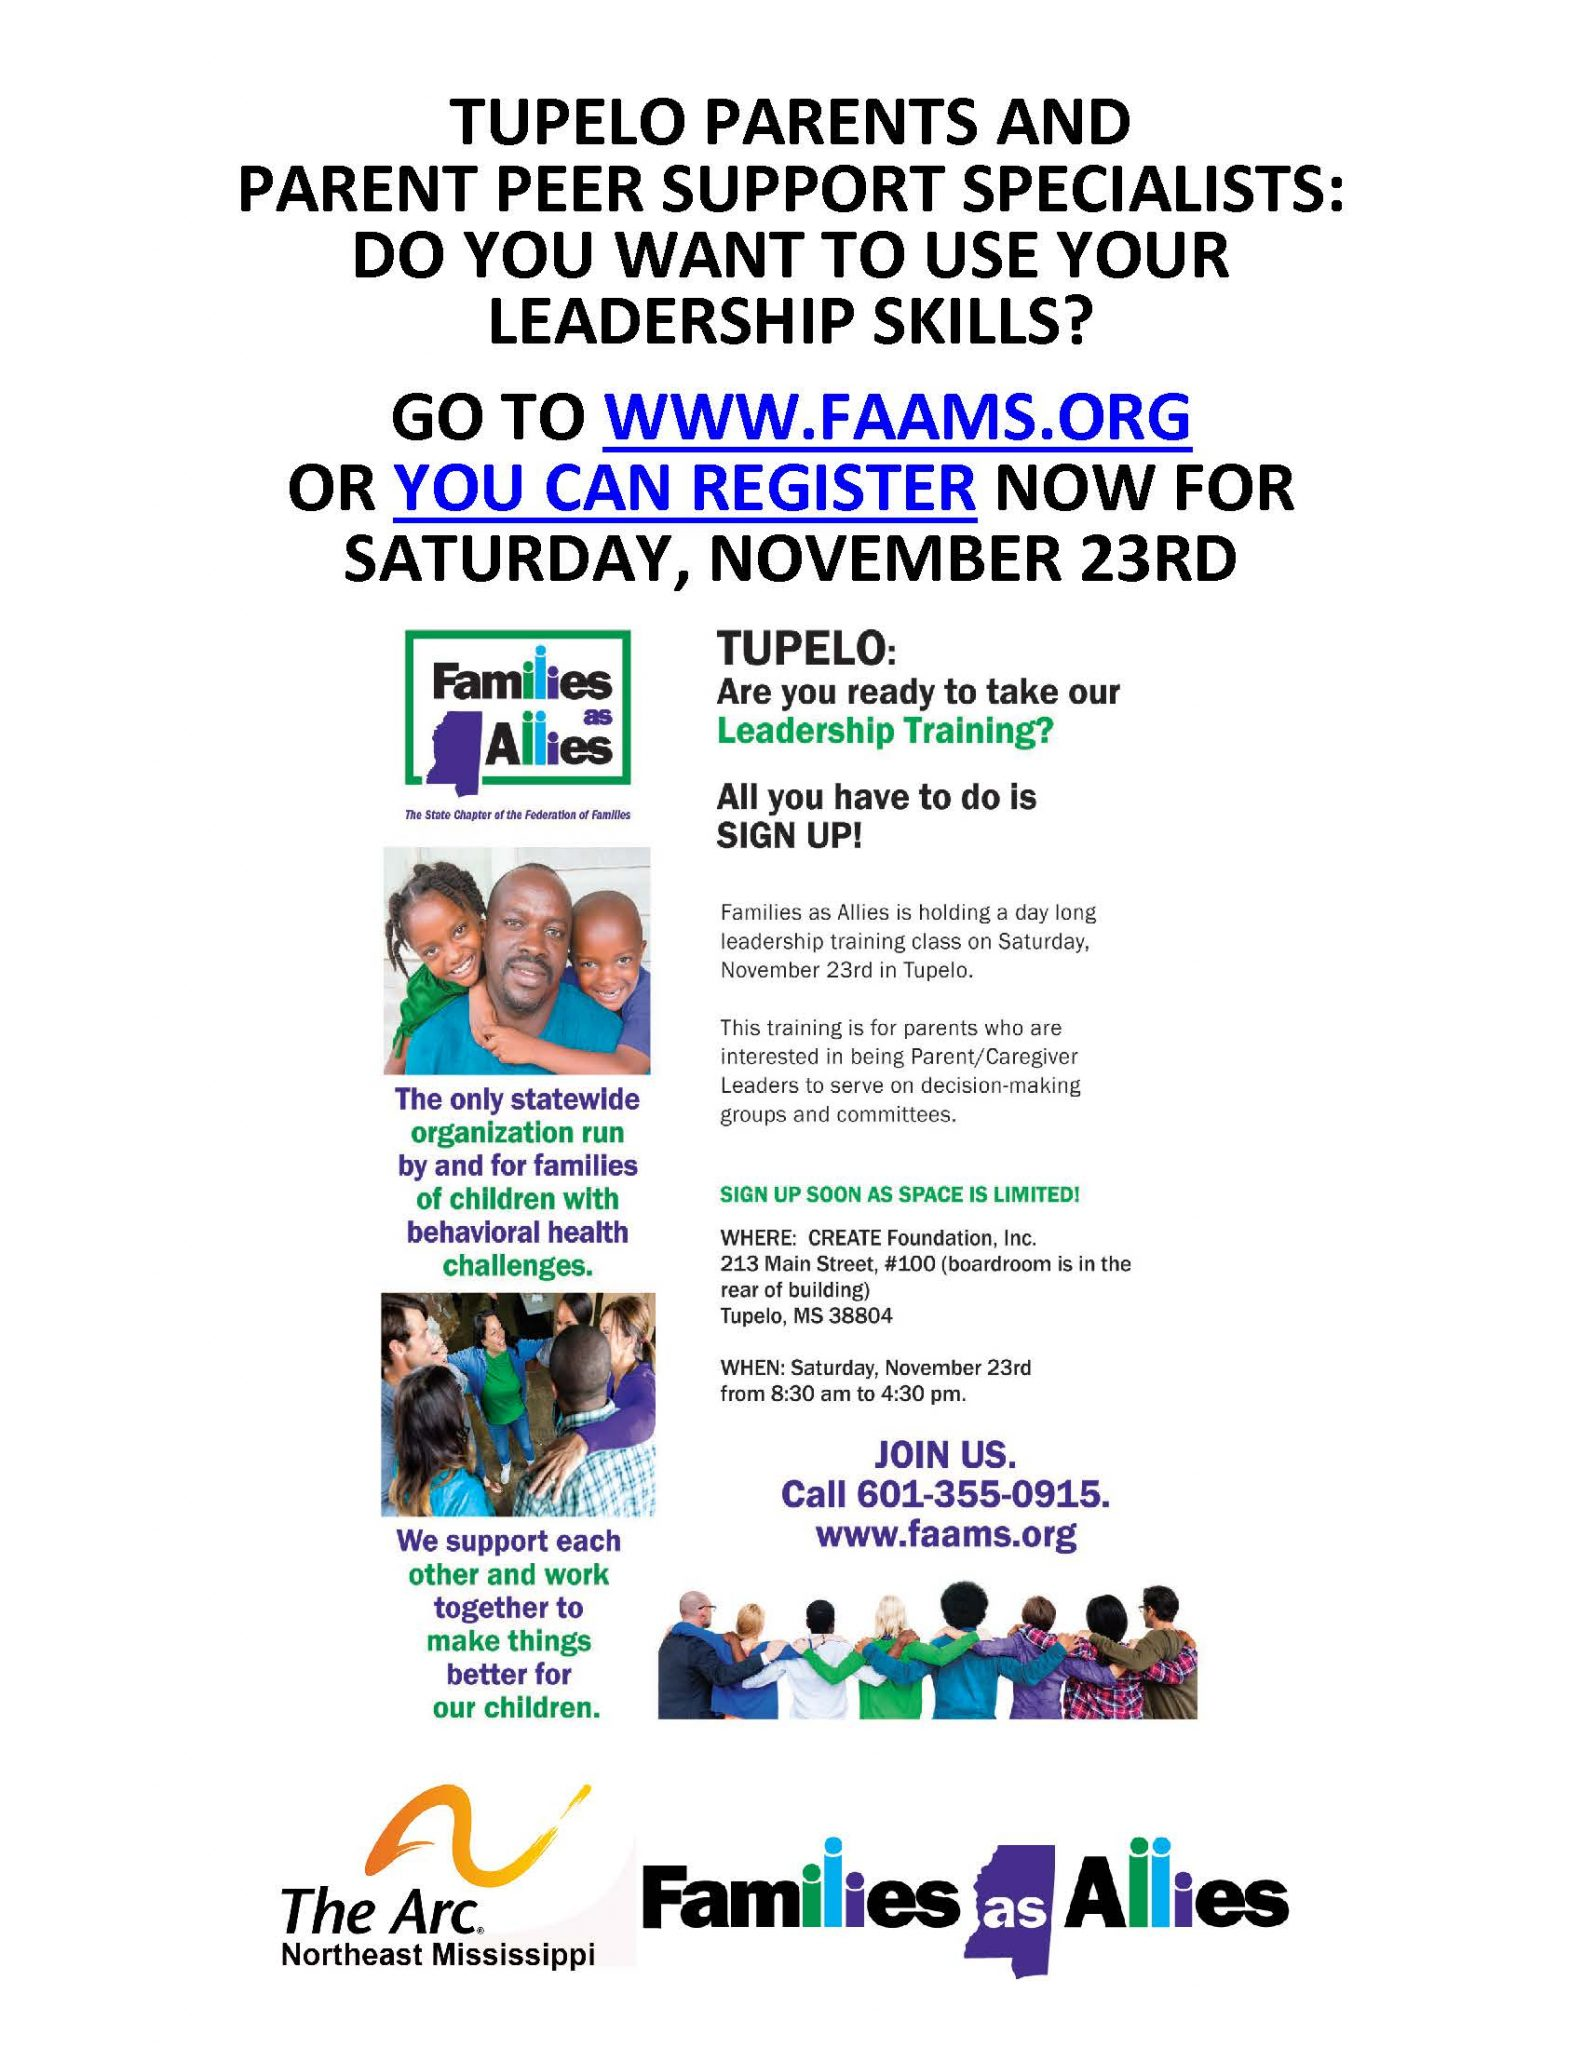 Tupelo Parents and Parent Peer Support Specialists: Do You Want to Use Your Leadership Skills?